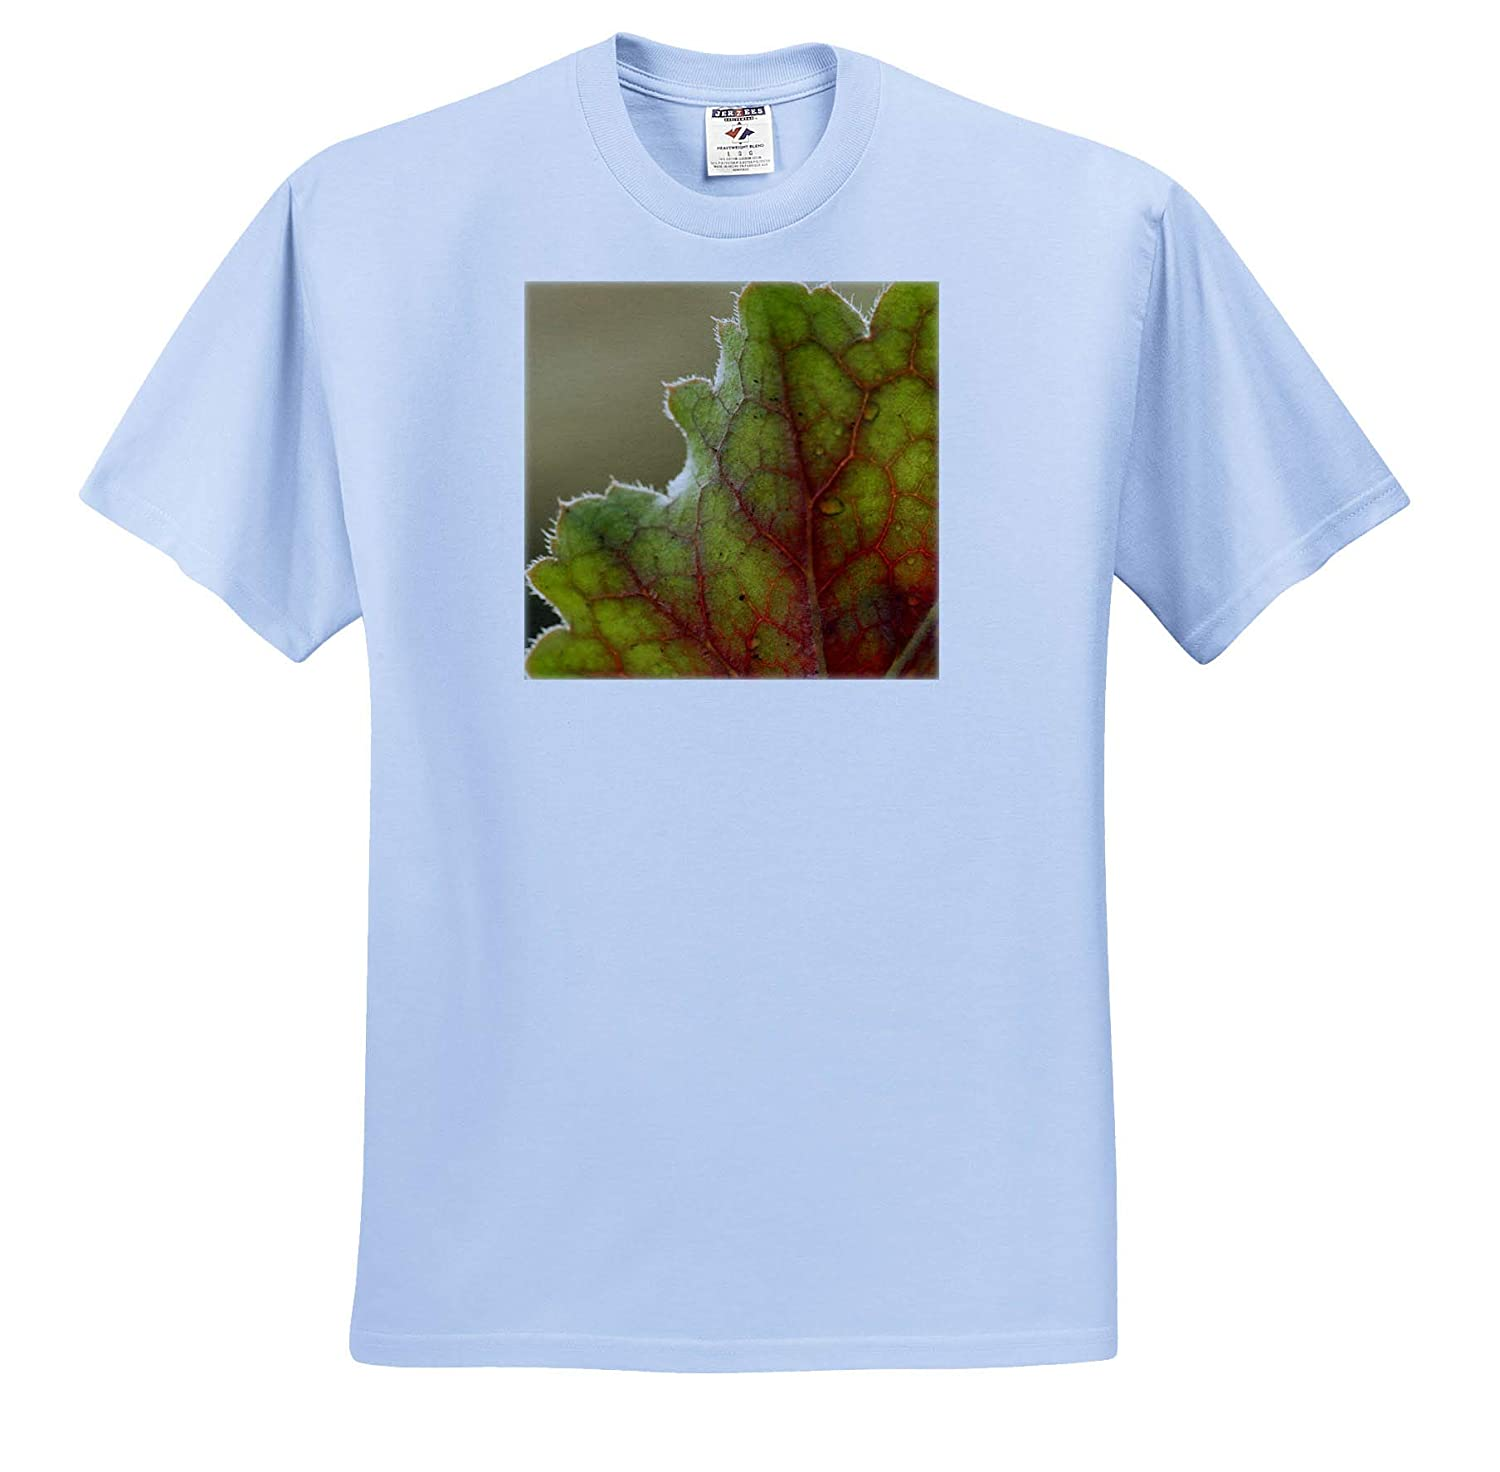 - T-Shirts 3dRose Stamp City Nature A Macro Photograph of a Leaf from The Coral Bells Plant